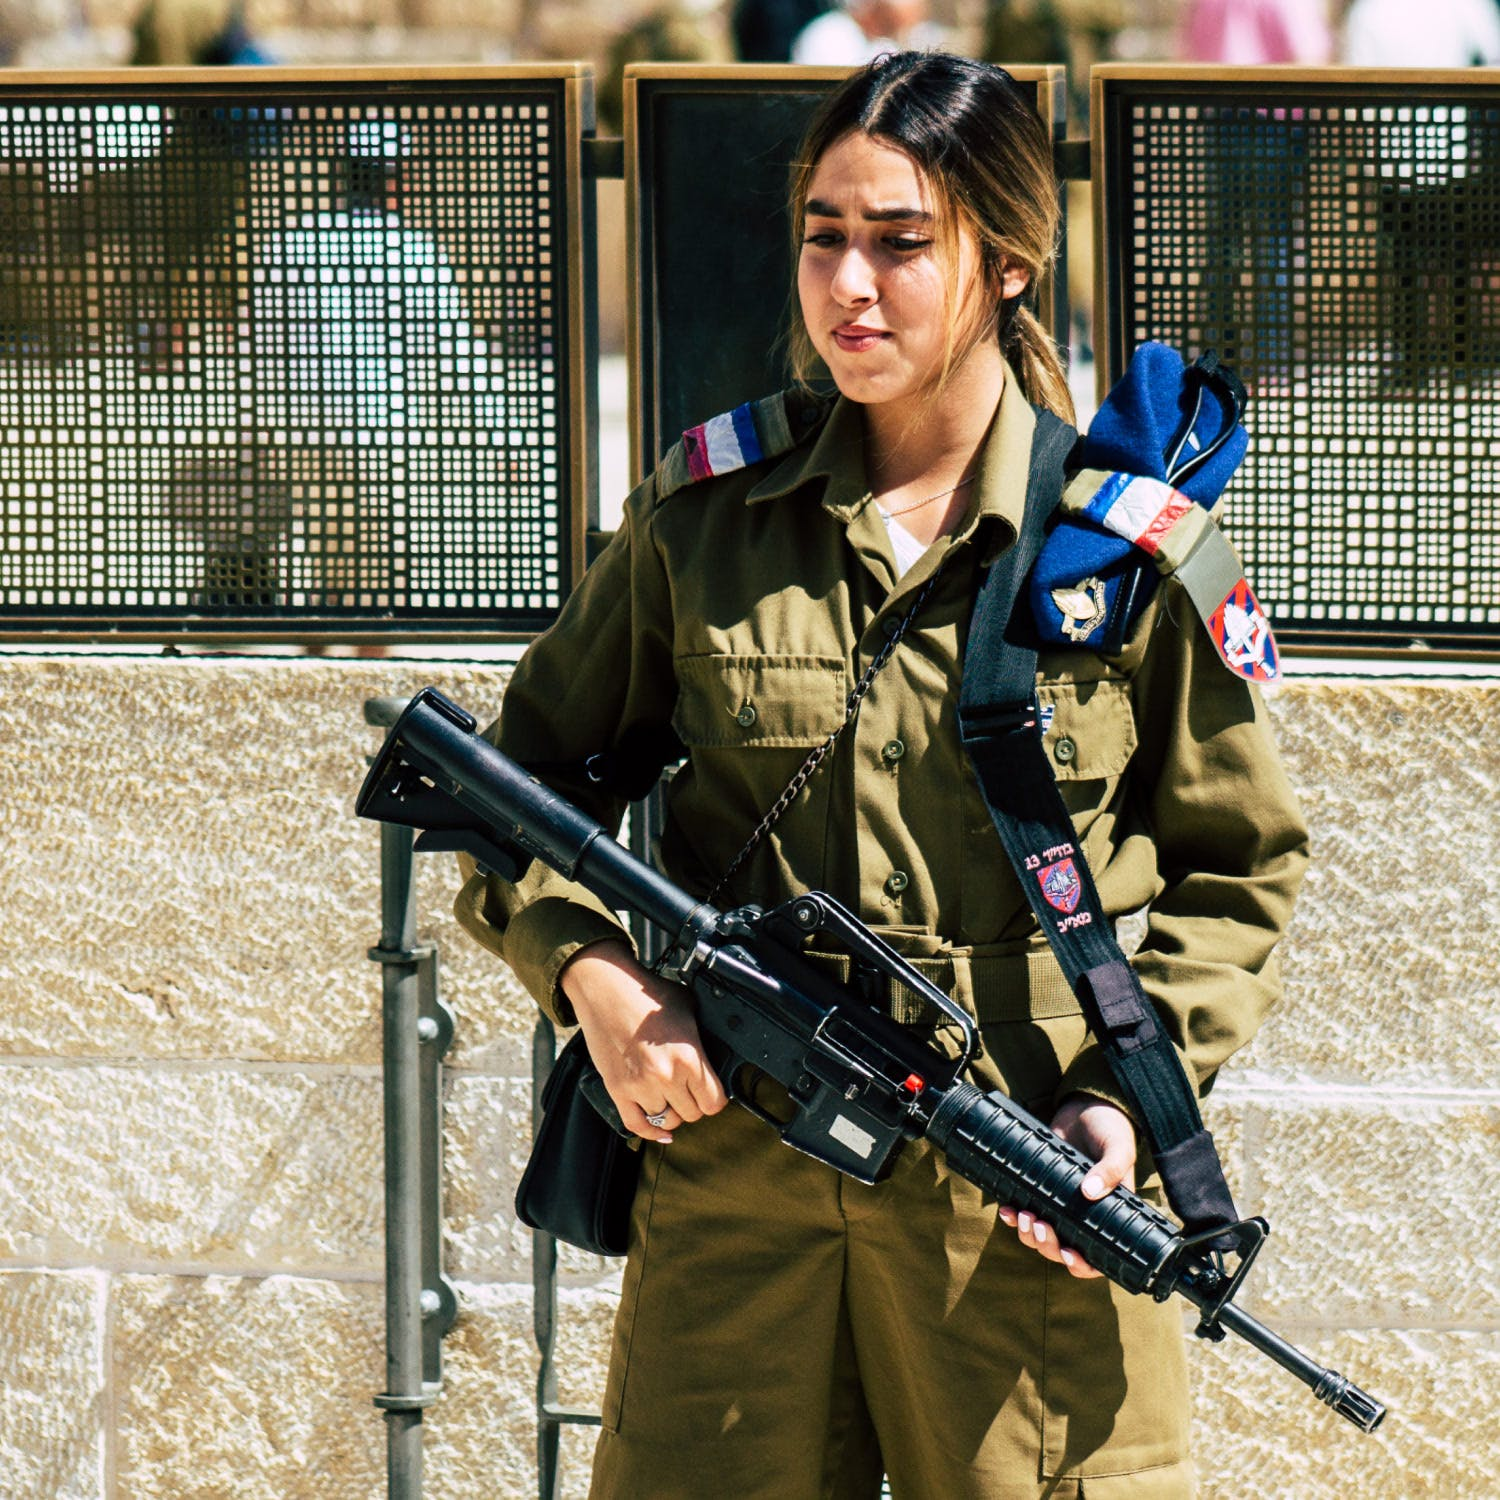 What It's Like as a Jewish Woman Inside the IDF